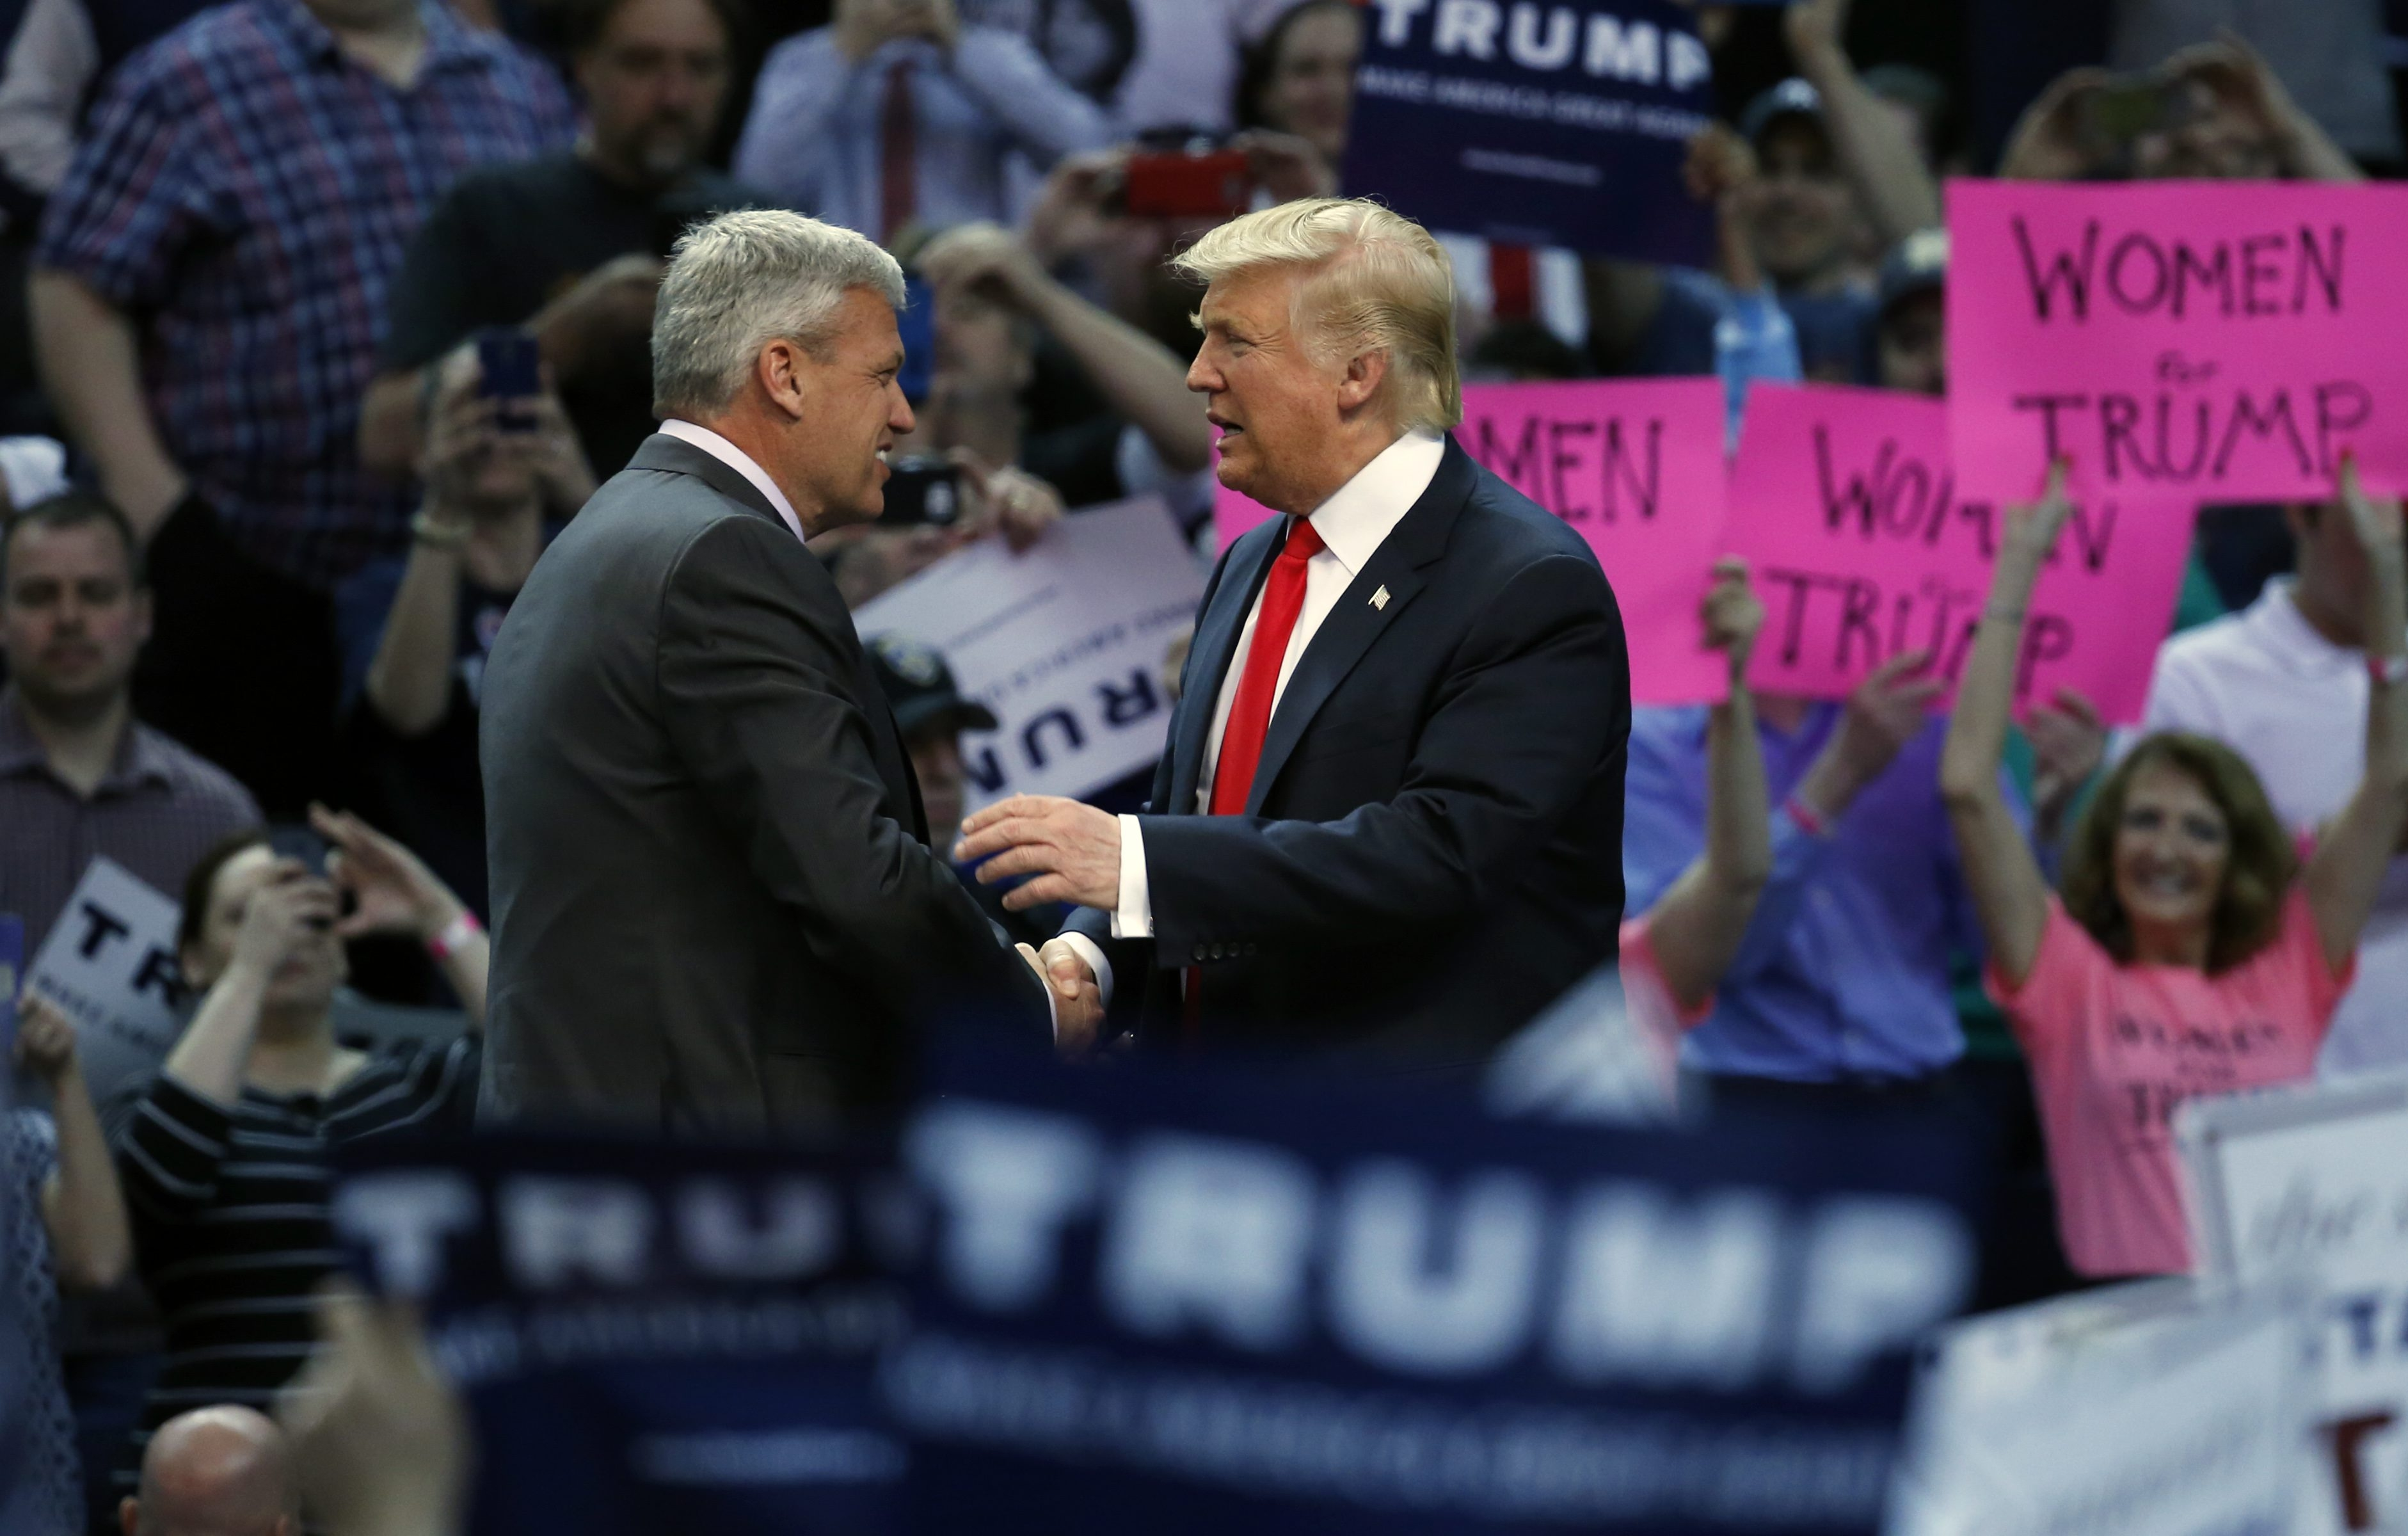 Buffalo Bills head coach Rex Ryan introduces Republican presidential candidate Donald Trump at Trump's rally Monday night at First Niagara Center.